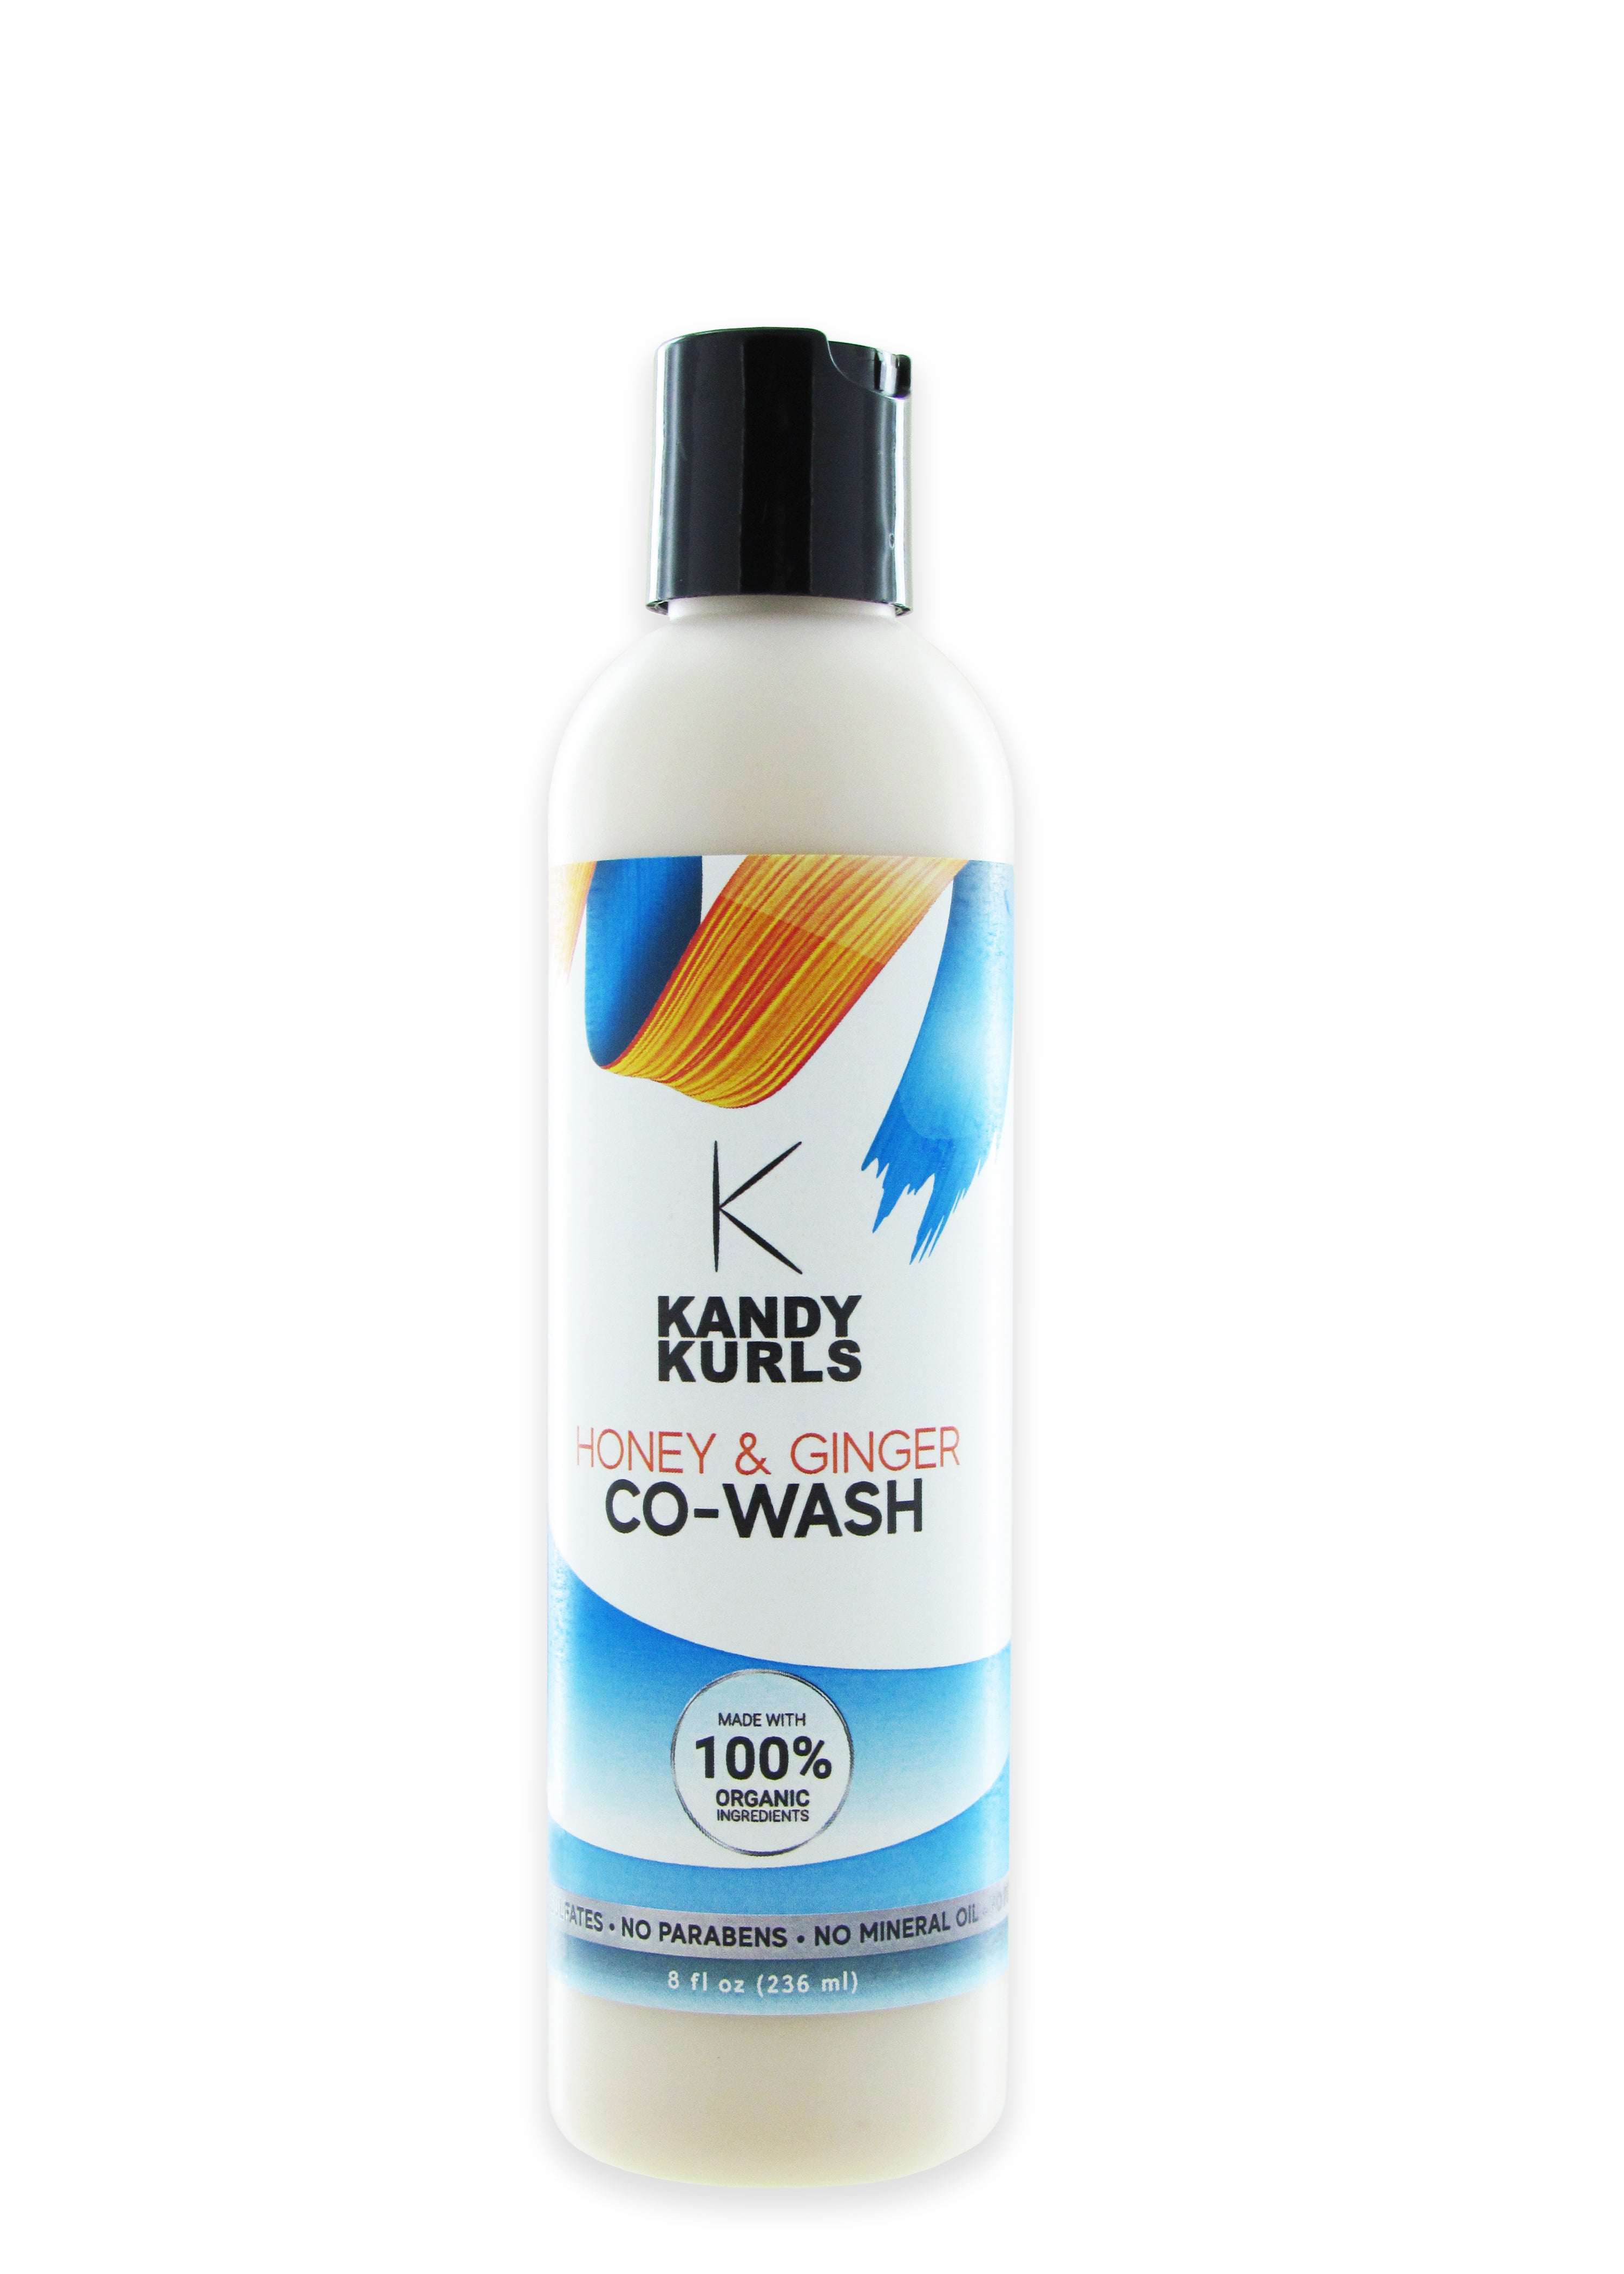 KANDY KURLS HONEY & GINGER CO-WASH